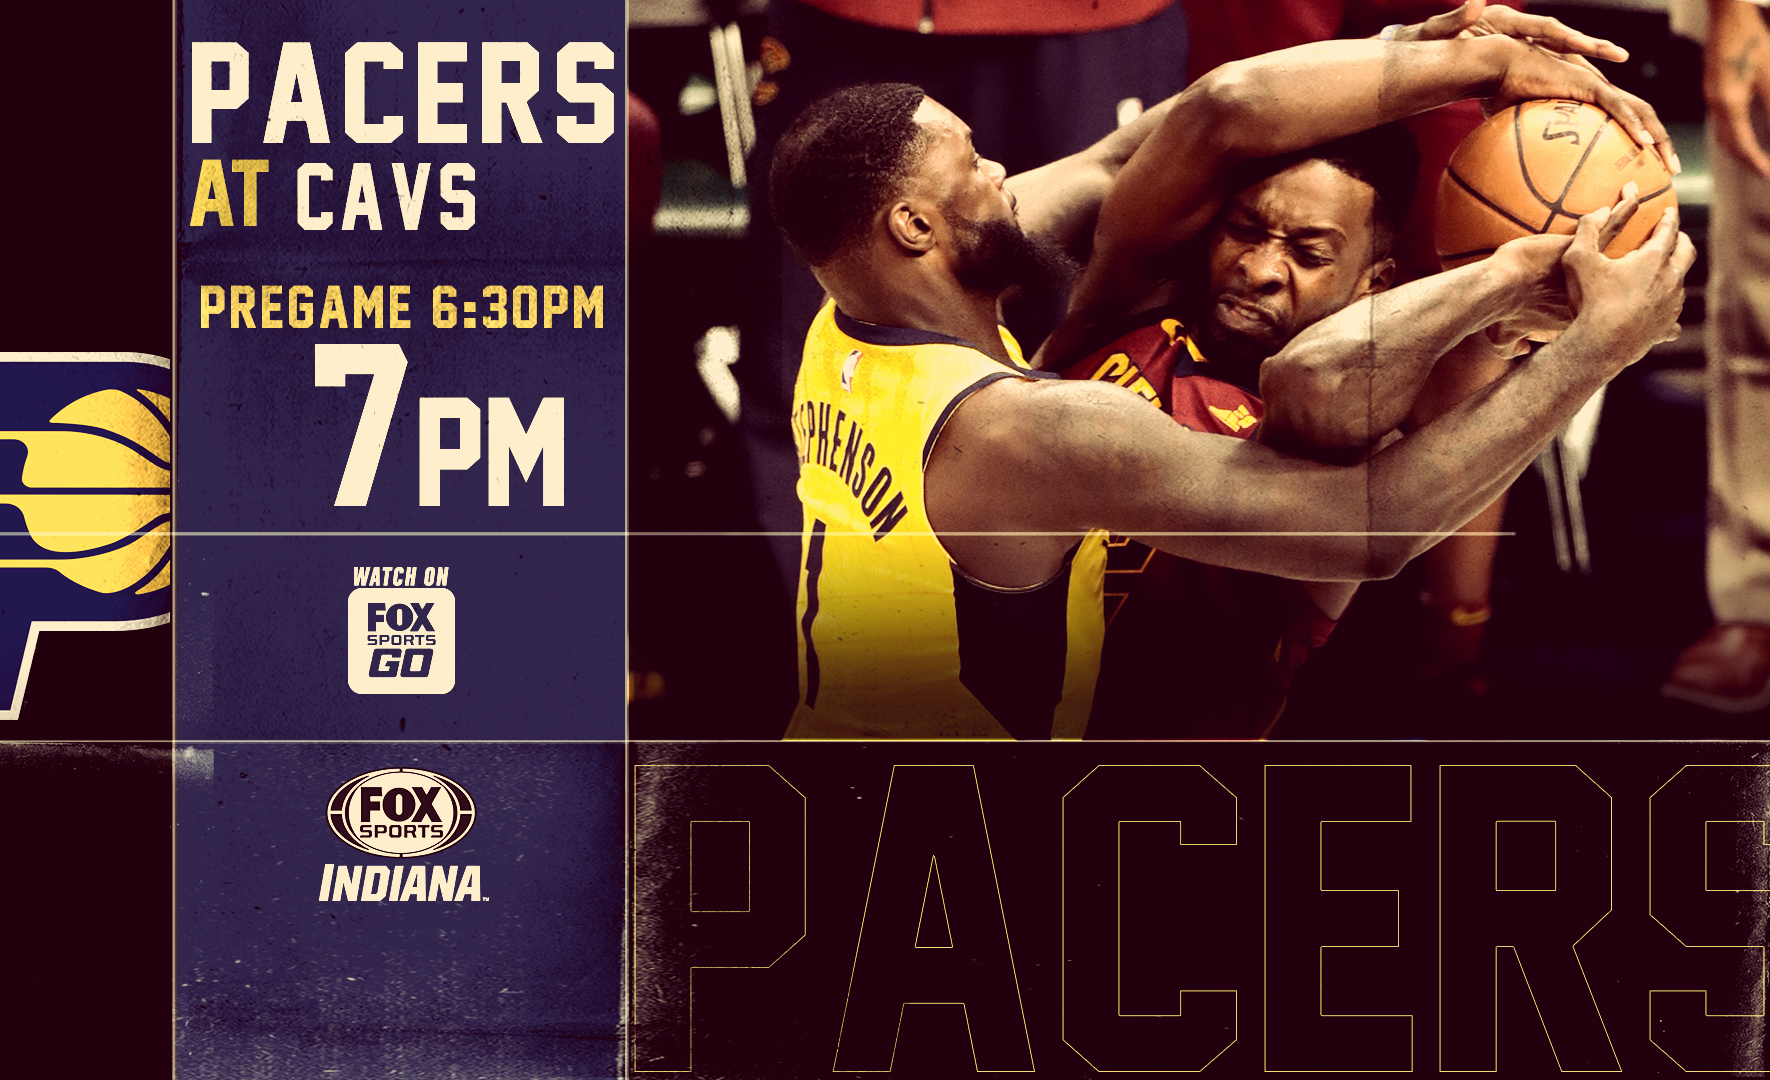 Pacers-FSI-tune-in-042518-Lance